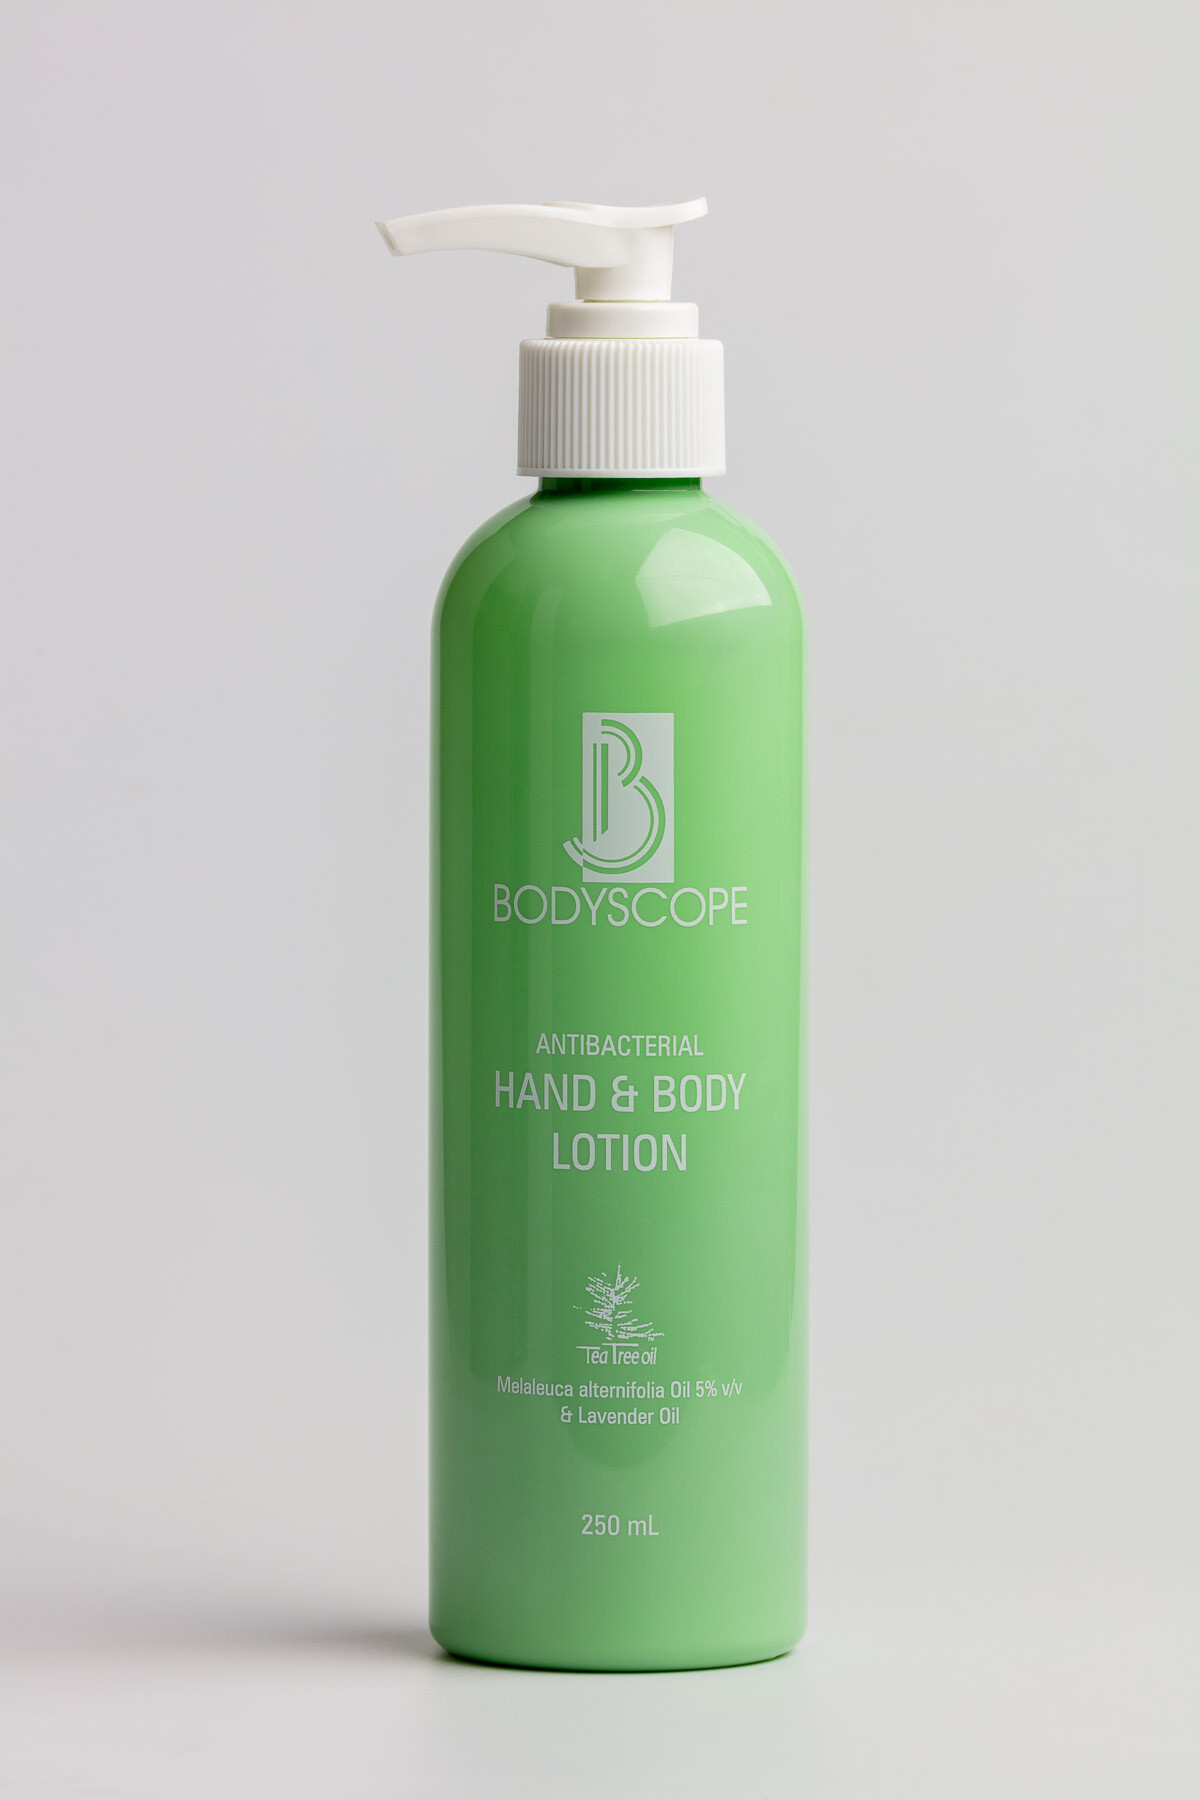 Body Scope hand & Body Lotion Single - Advertising product photography for website